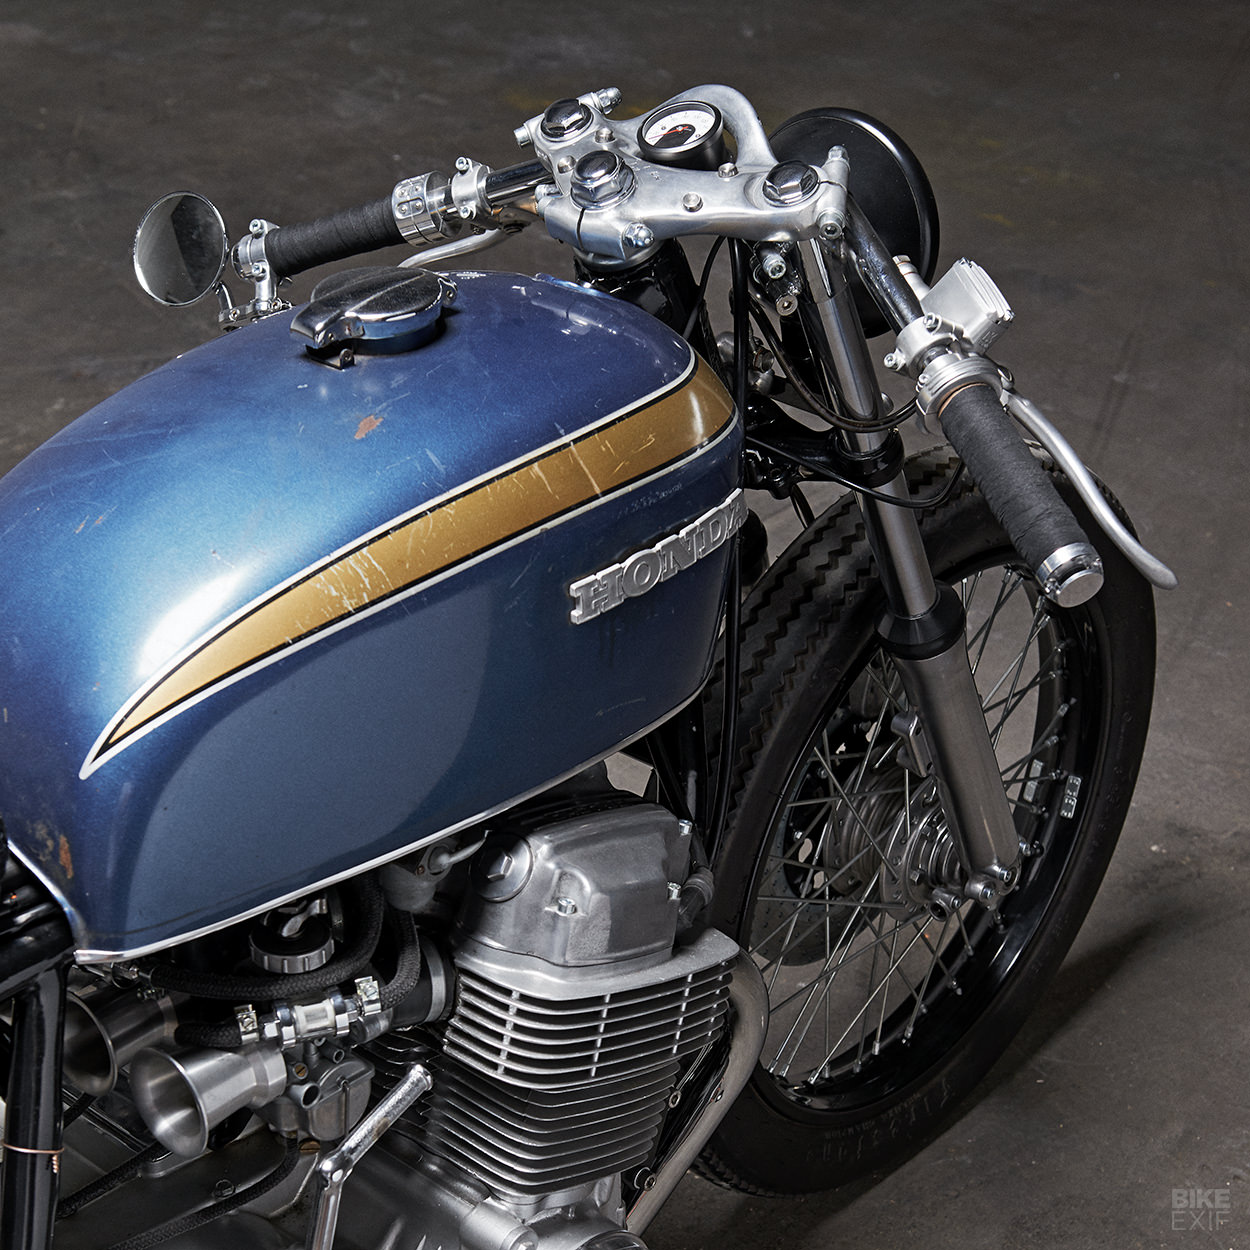 A vintage cafe racer from PAAL Motorcycles of Sweden